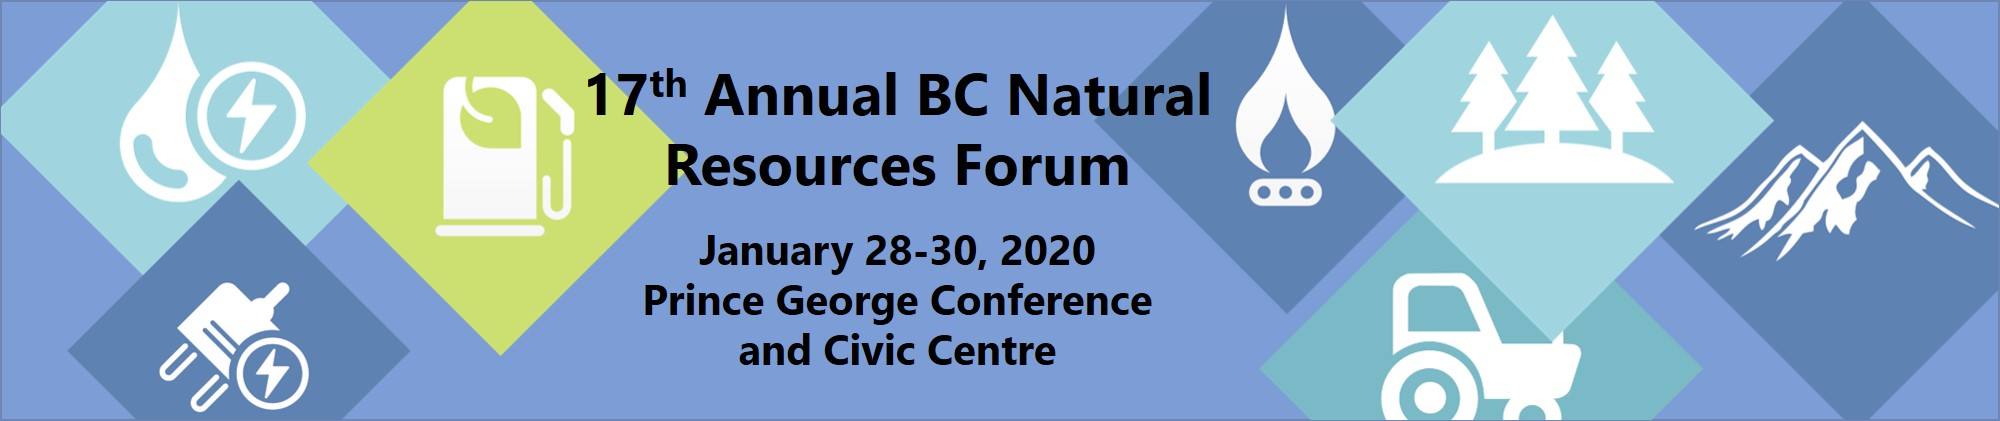 17th Annual BC Natural Resources Forum Event Image